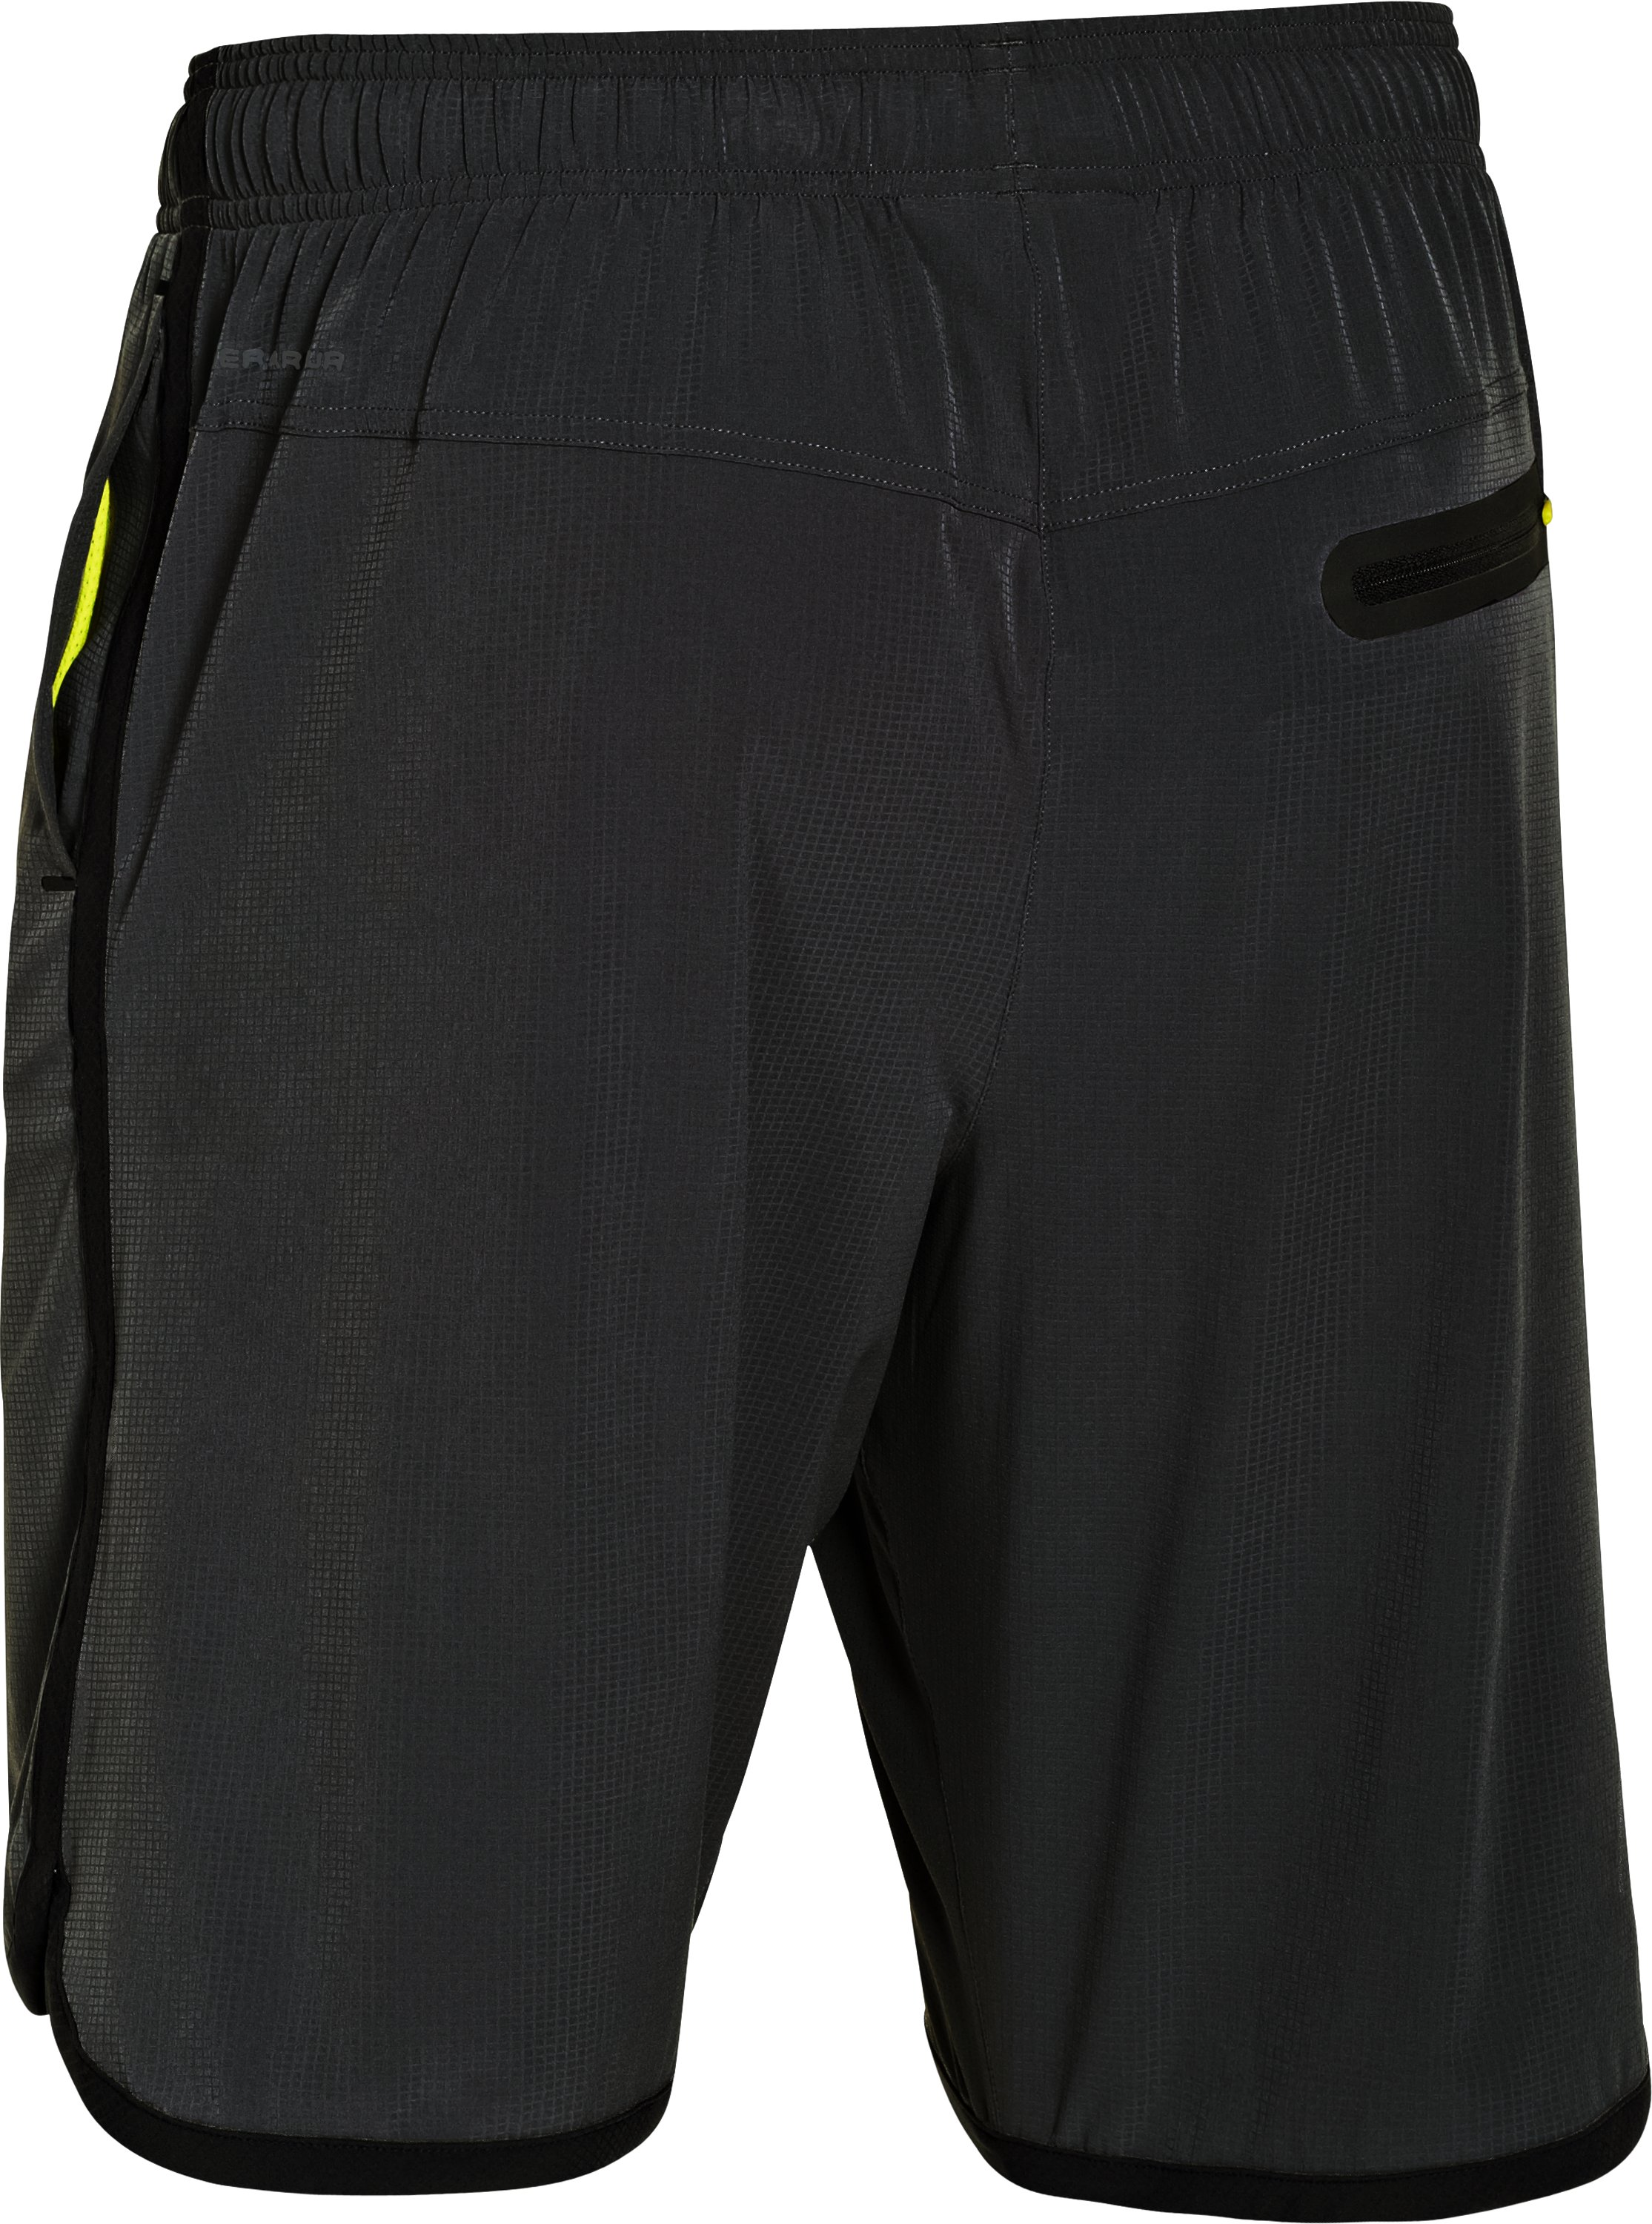 Men's UA Interval Woven Shorts, Black , undefined